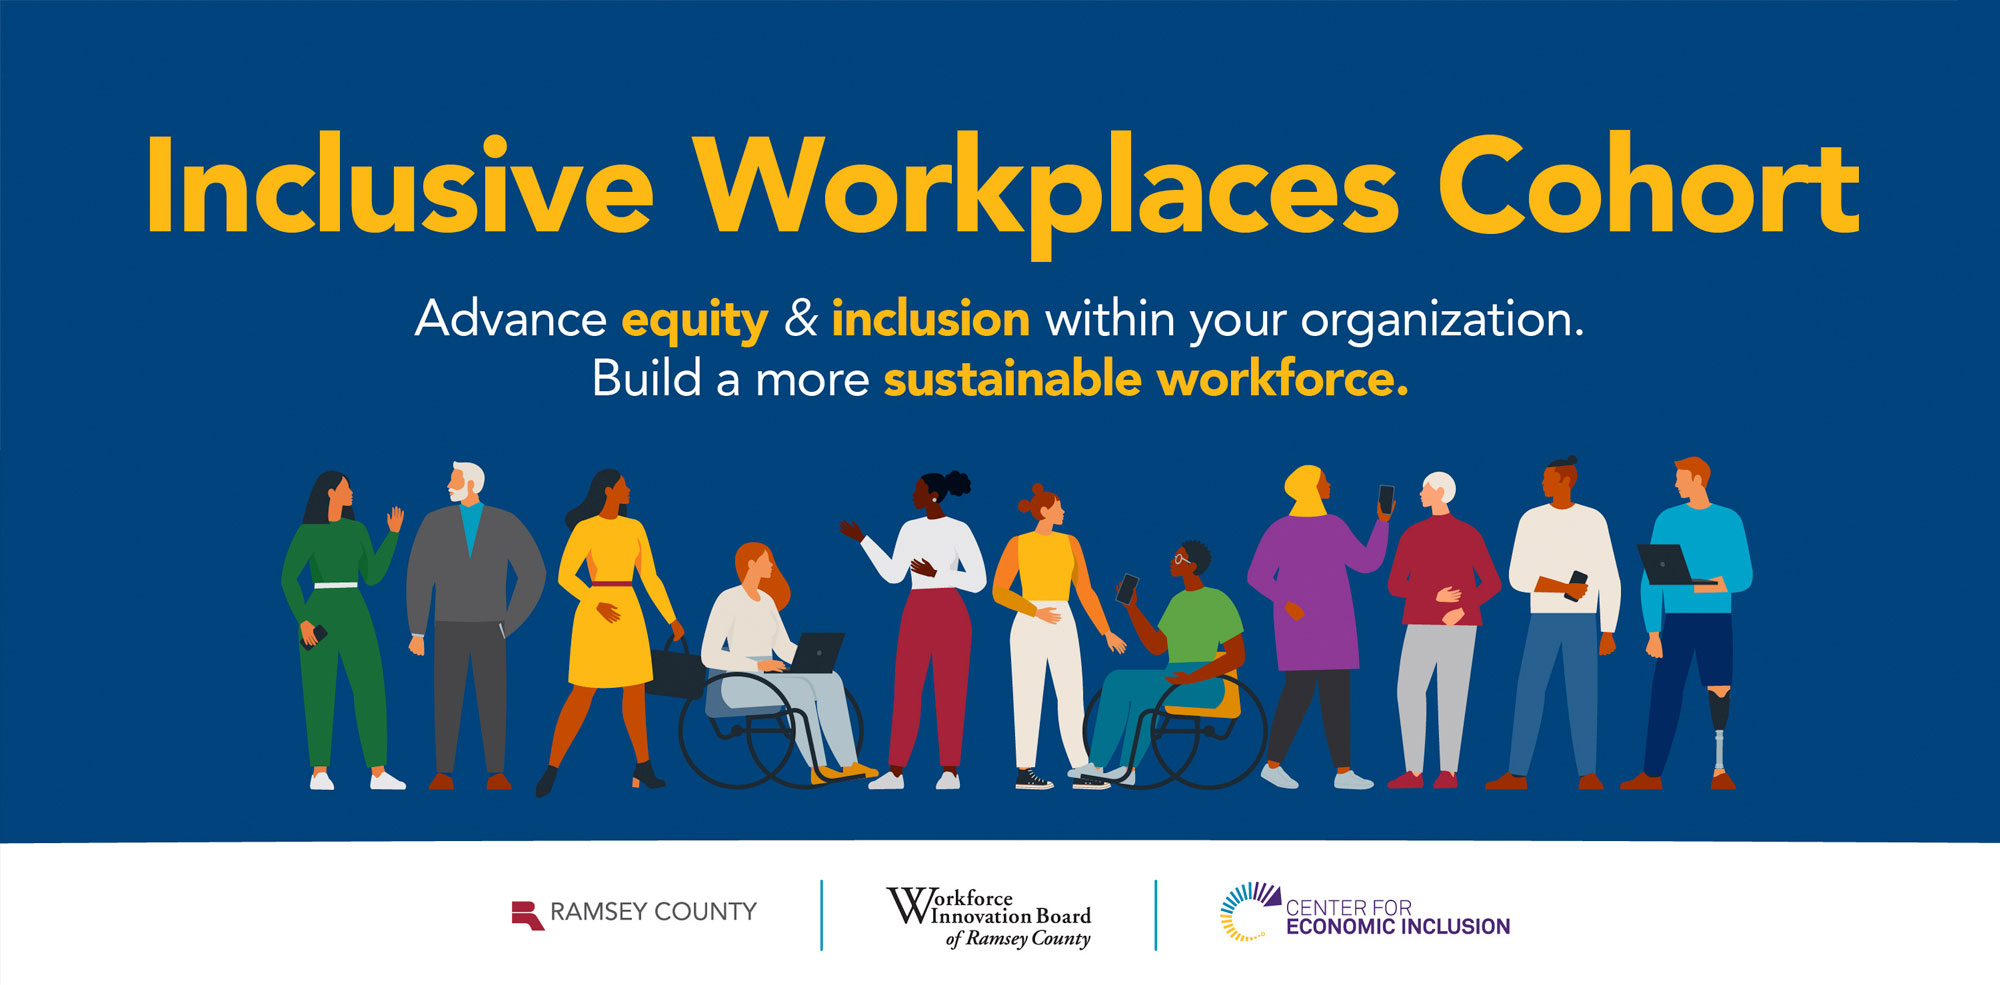 Inclusive Workplaces Cohort: Achieving Equity Together